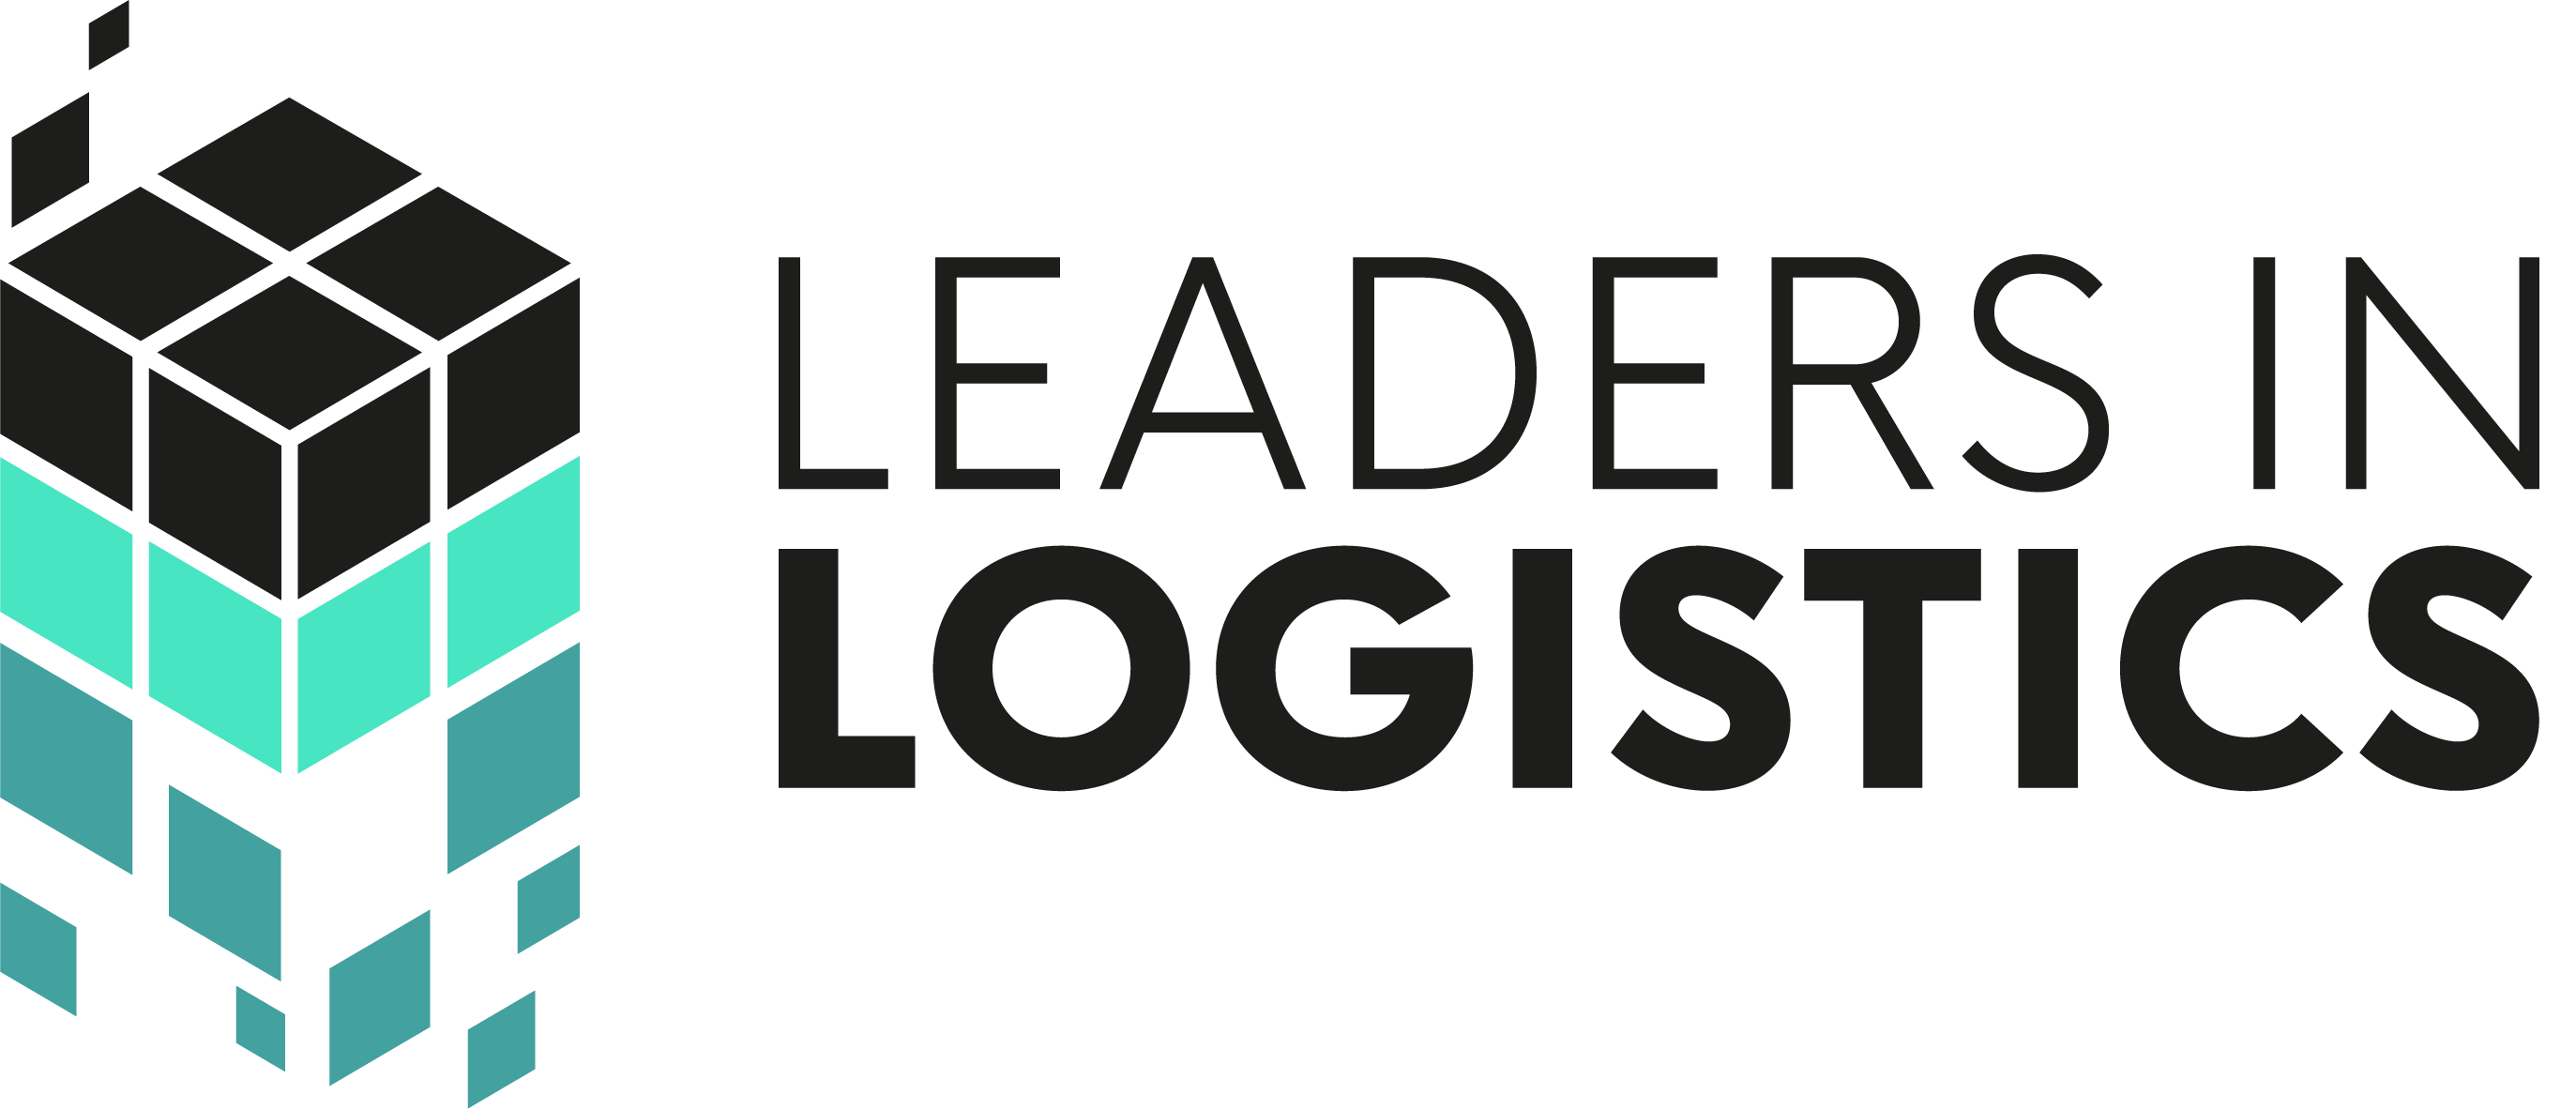 Leaders in Logistics